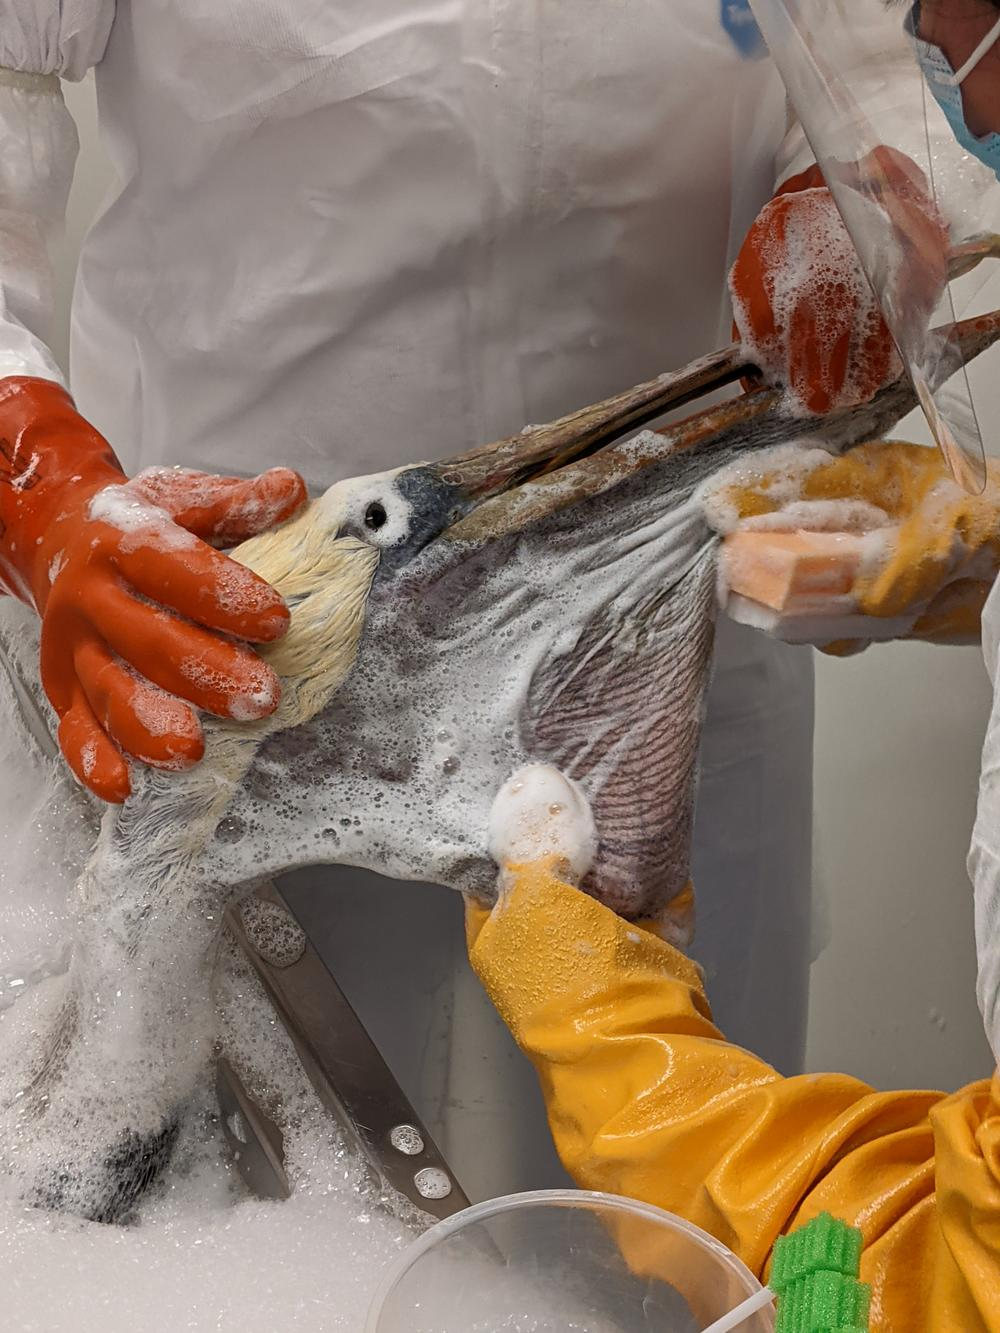 Workers in protective gear wash off a lightly-oiled pelican